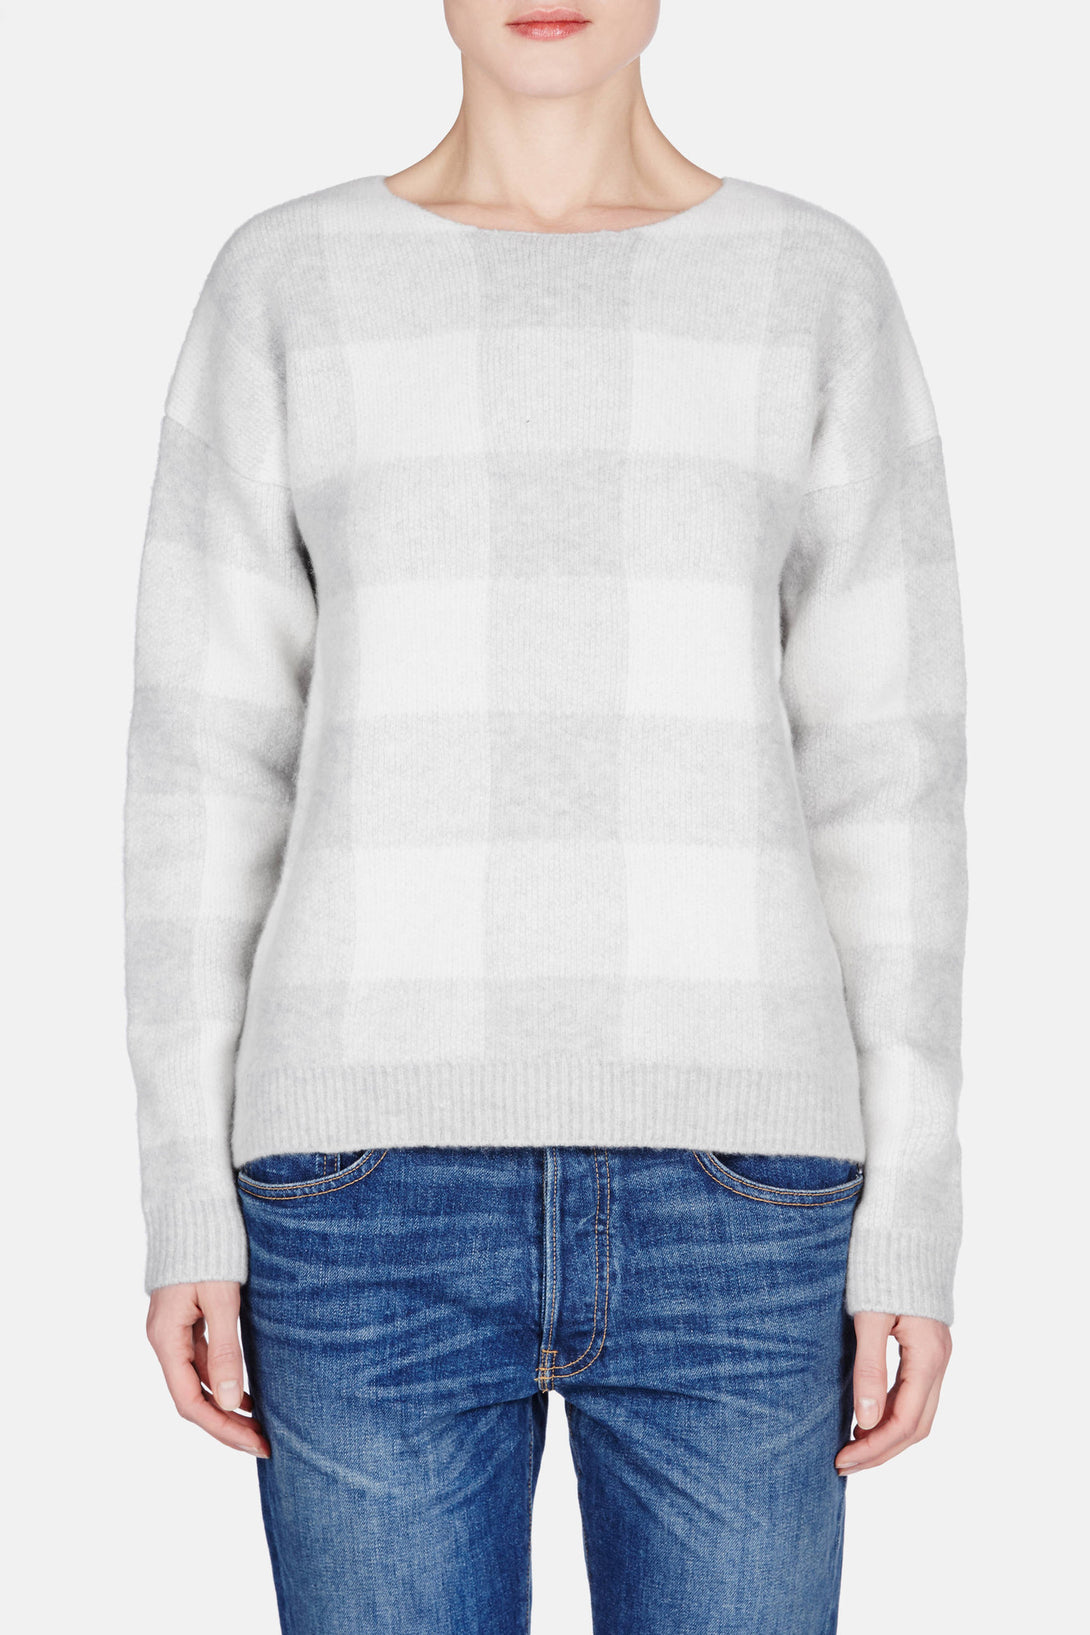 Gingham Crew - Grey/White